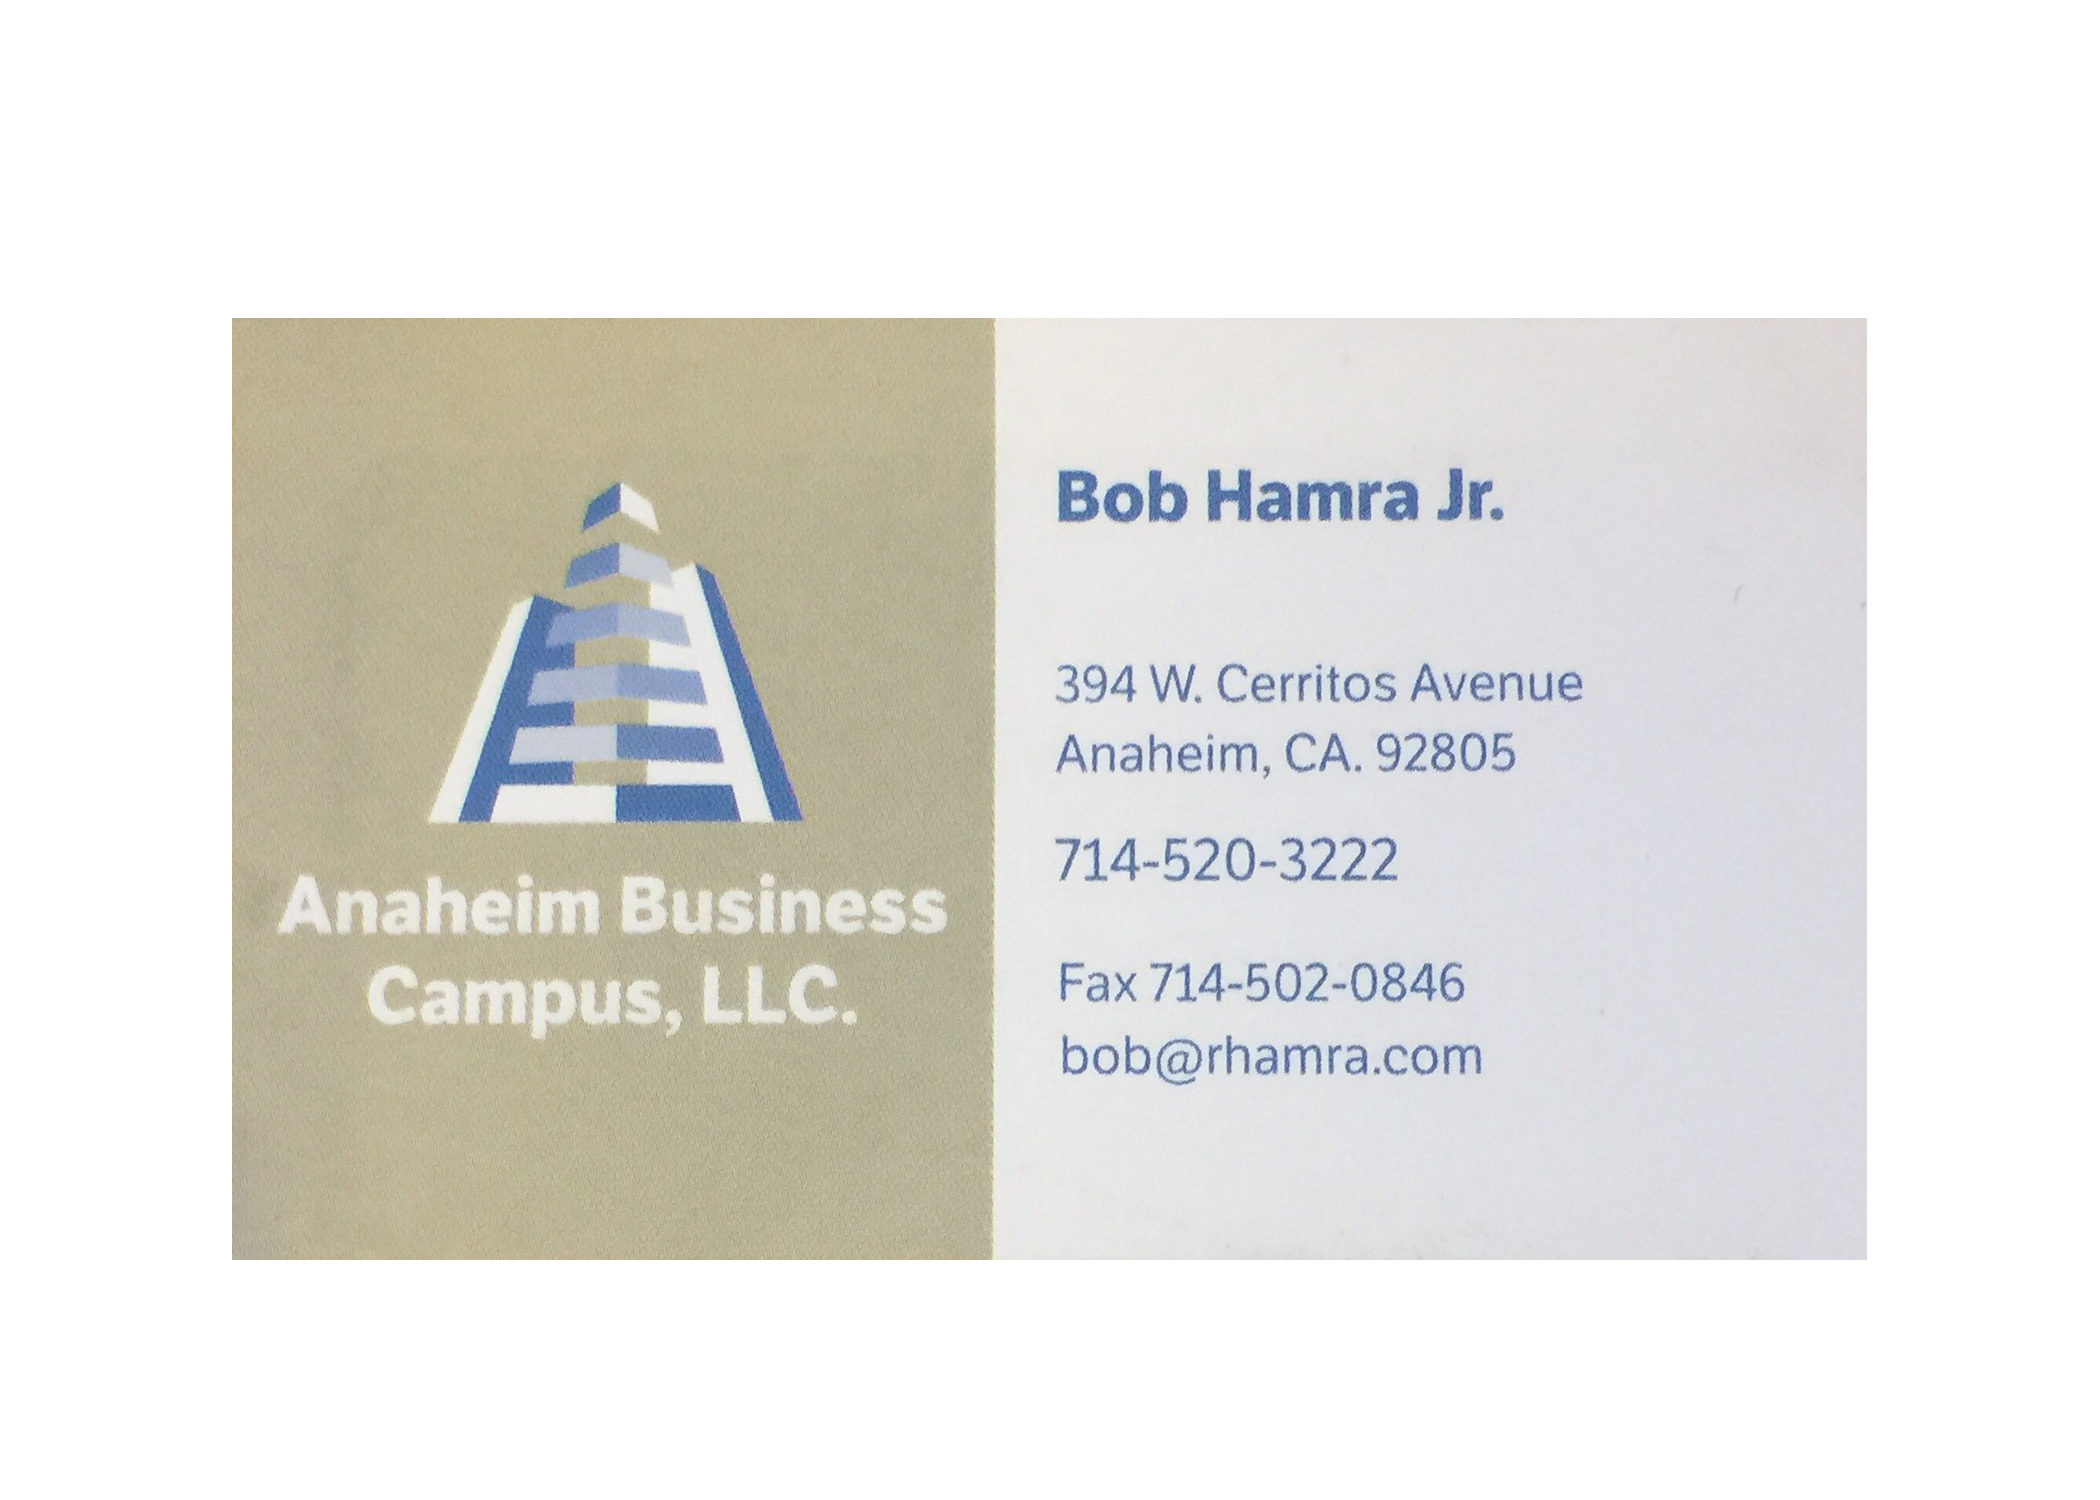 Anaheim Business Campus LLC